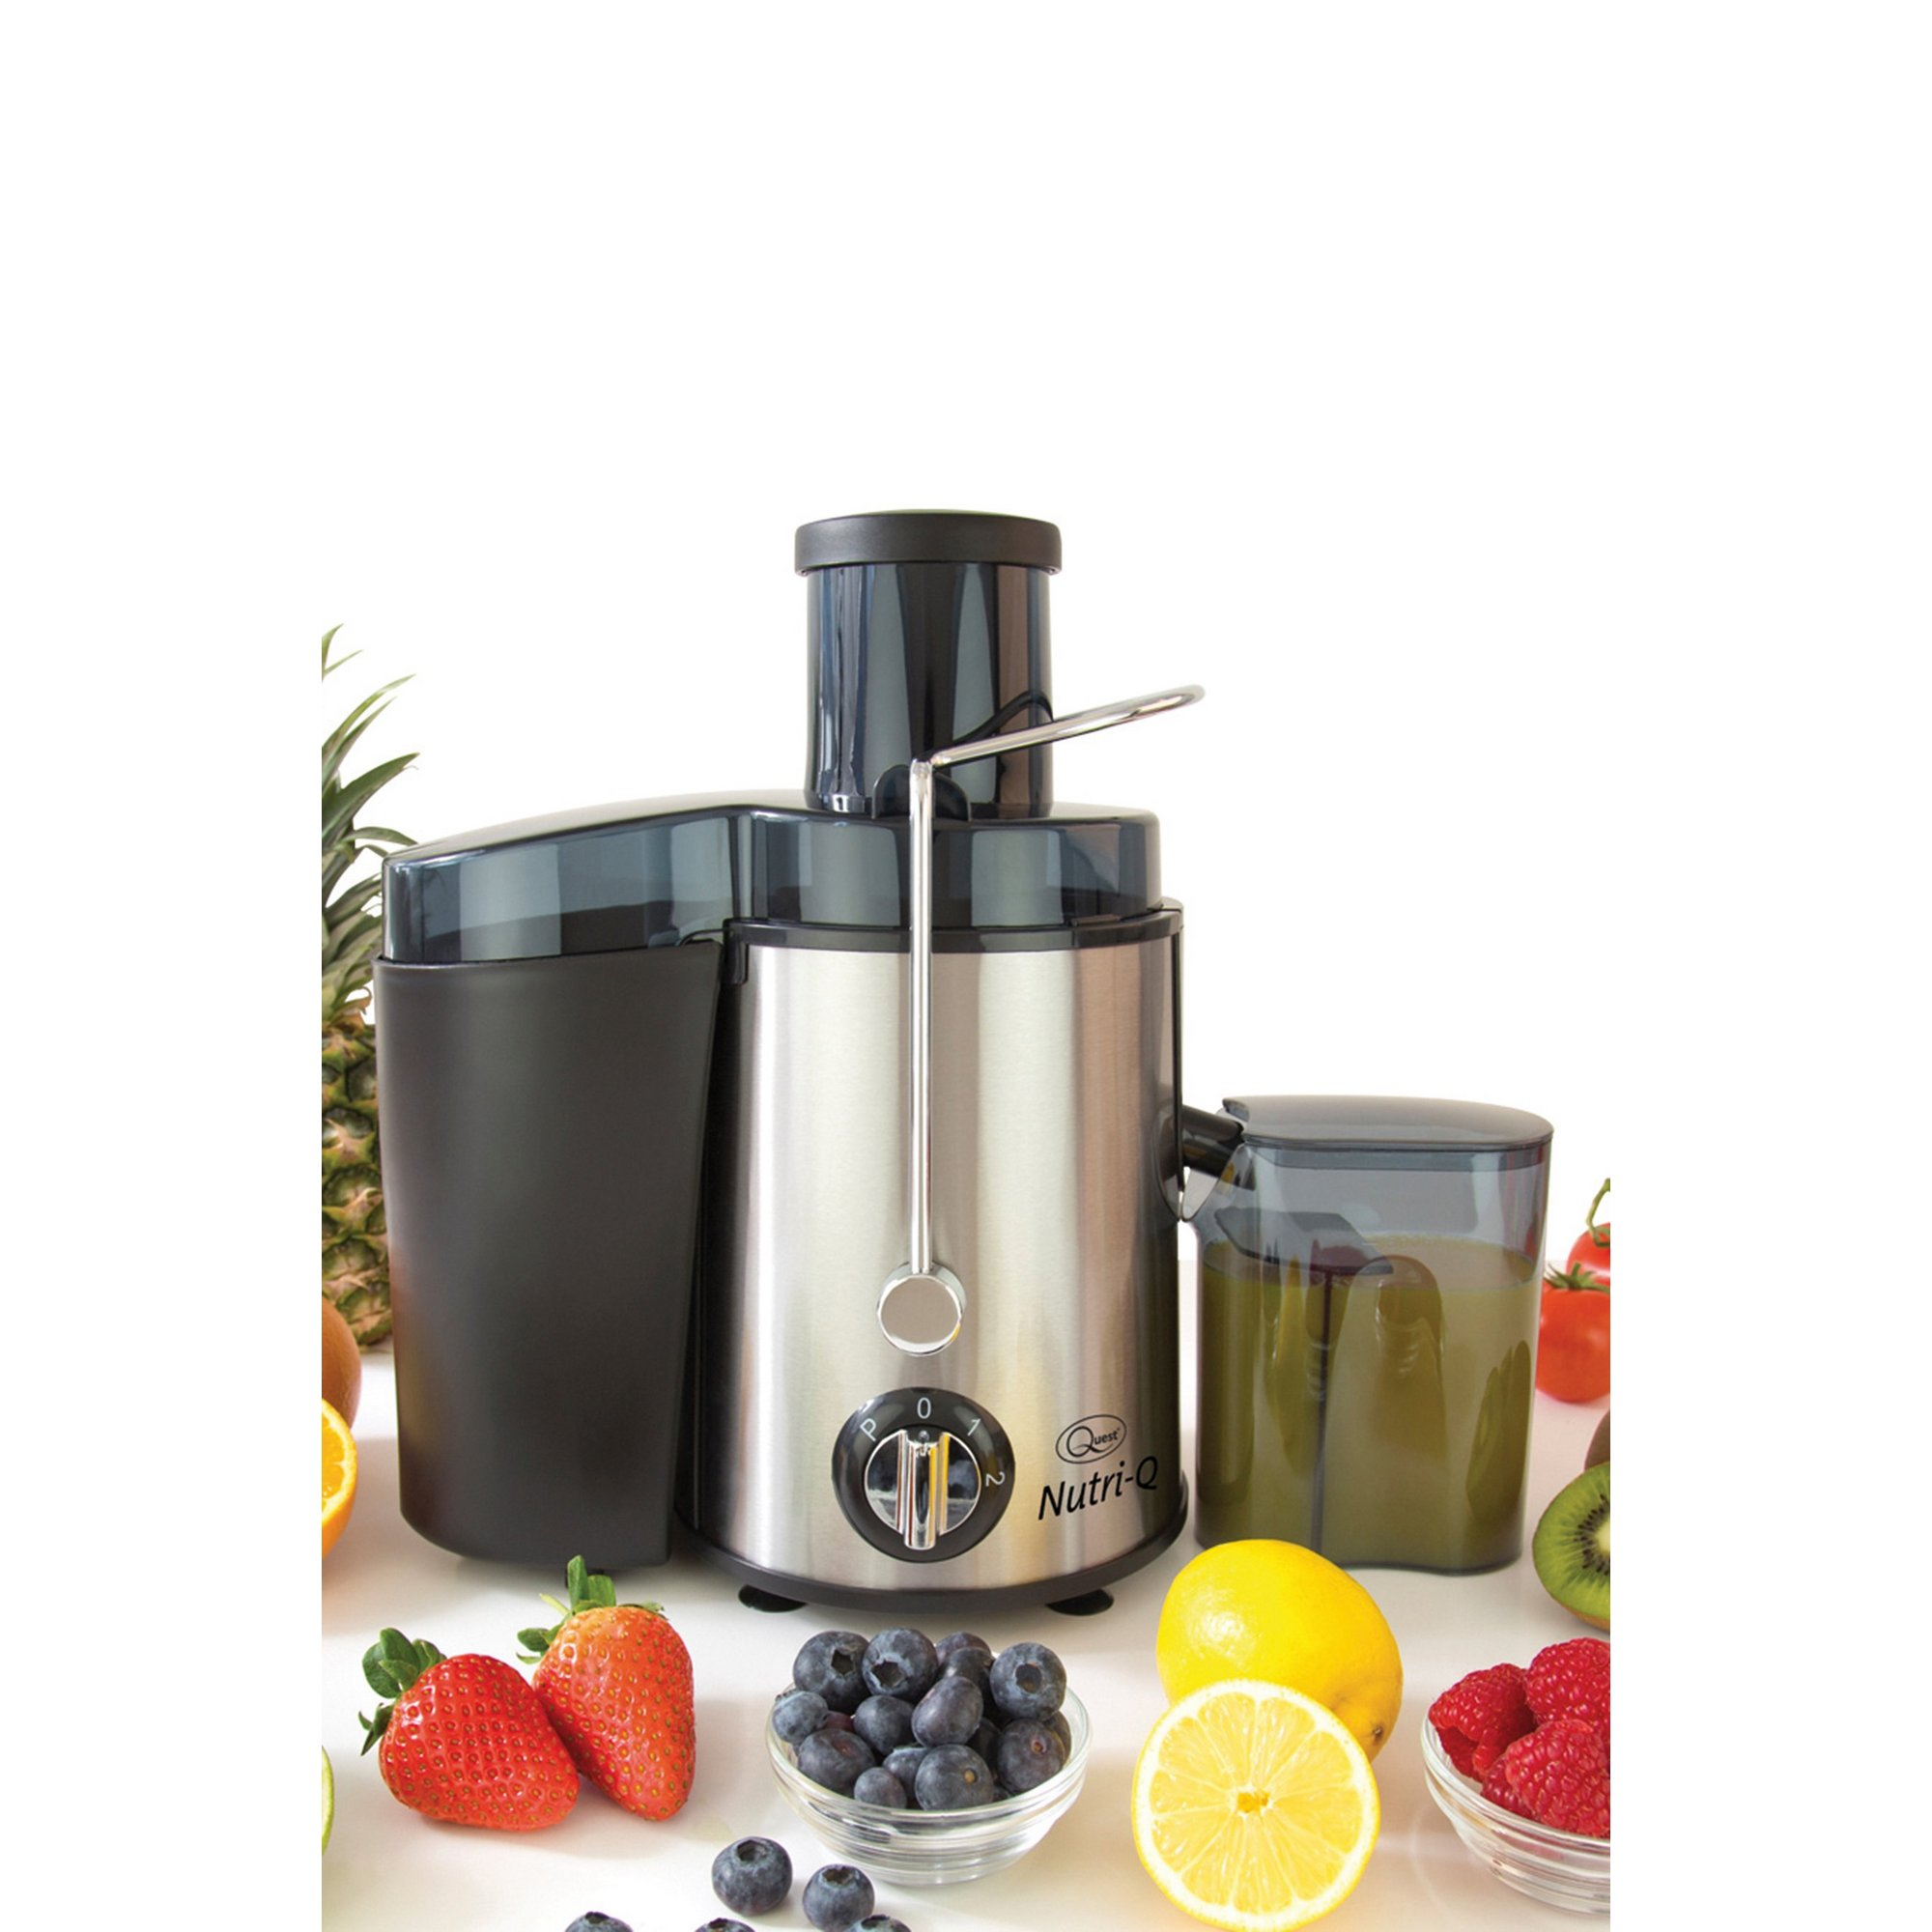 Image of Quest Nutri-Q Juicer